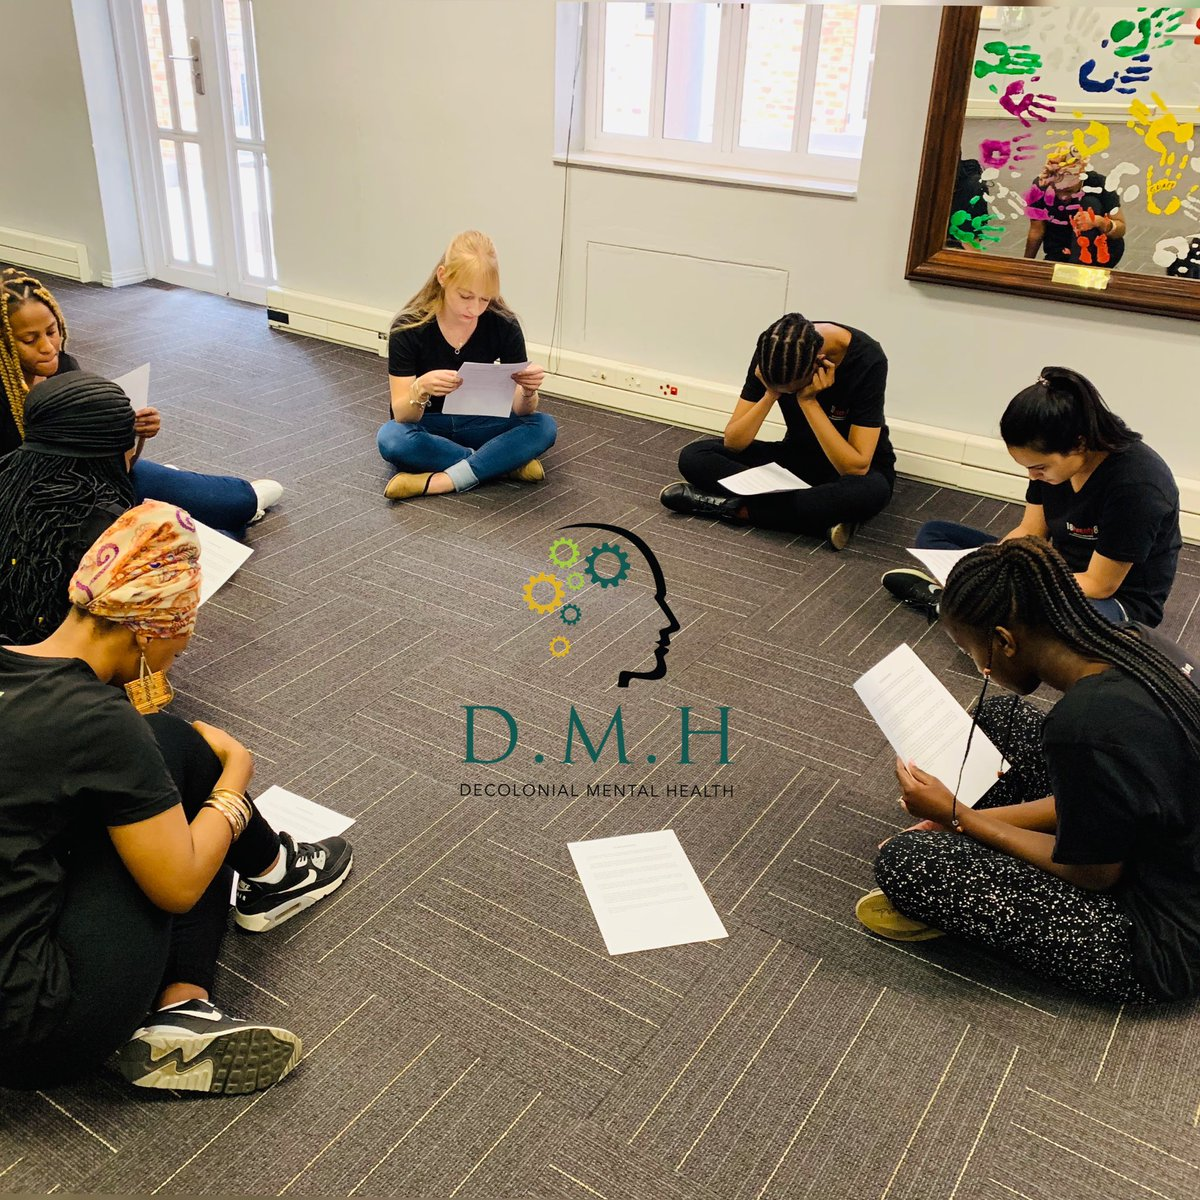 After weeks of planning and preparation, today We provided training to @18twenty8 Facilitators on a Mental Health & Wellness Module developed for Supporting Girls in their Undergraduate Studies. #MentalHealthAwareness #dmhsolutions2019 #shona #AmINext